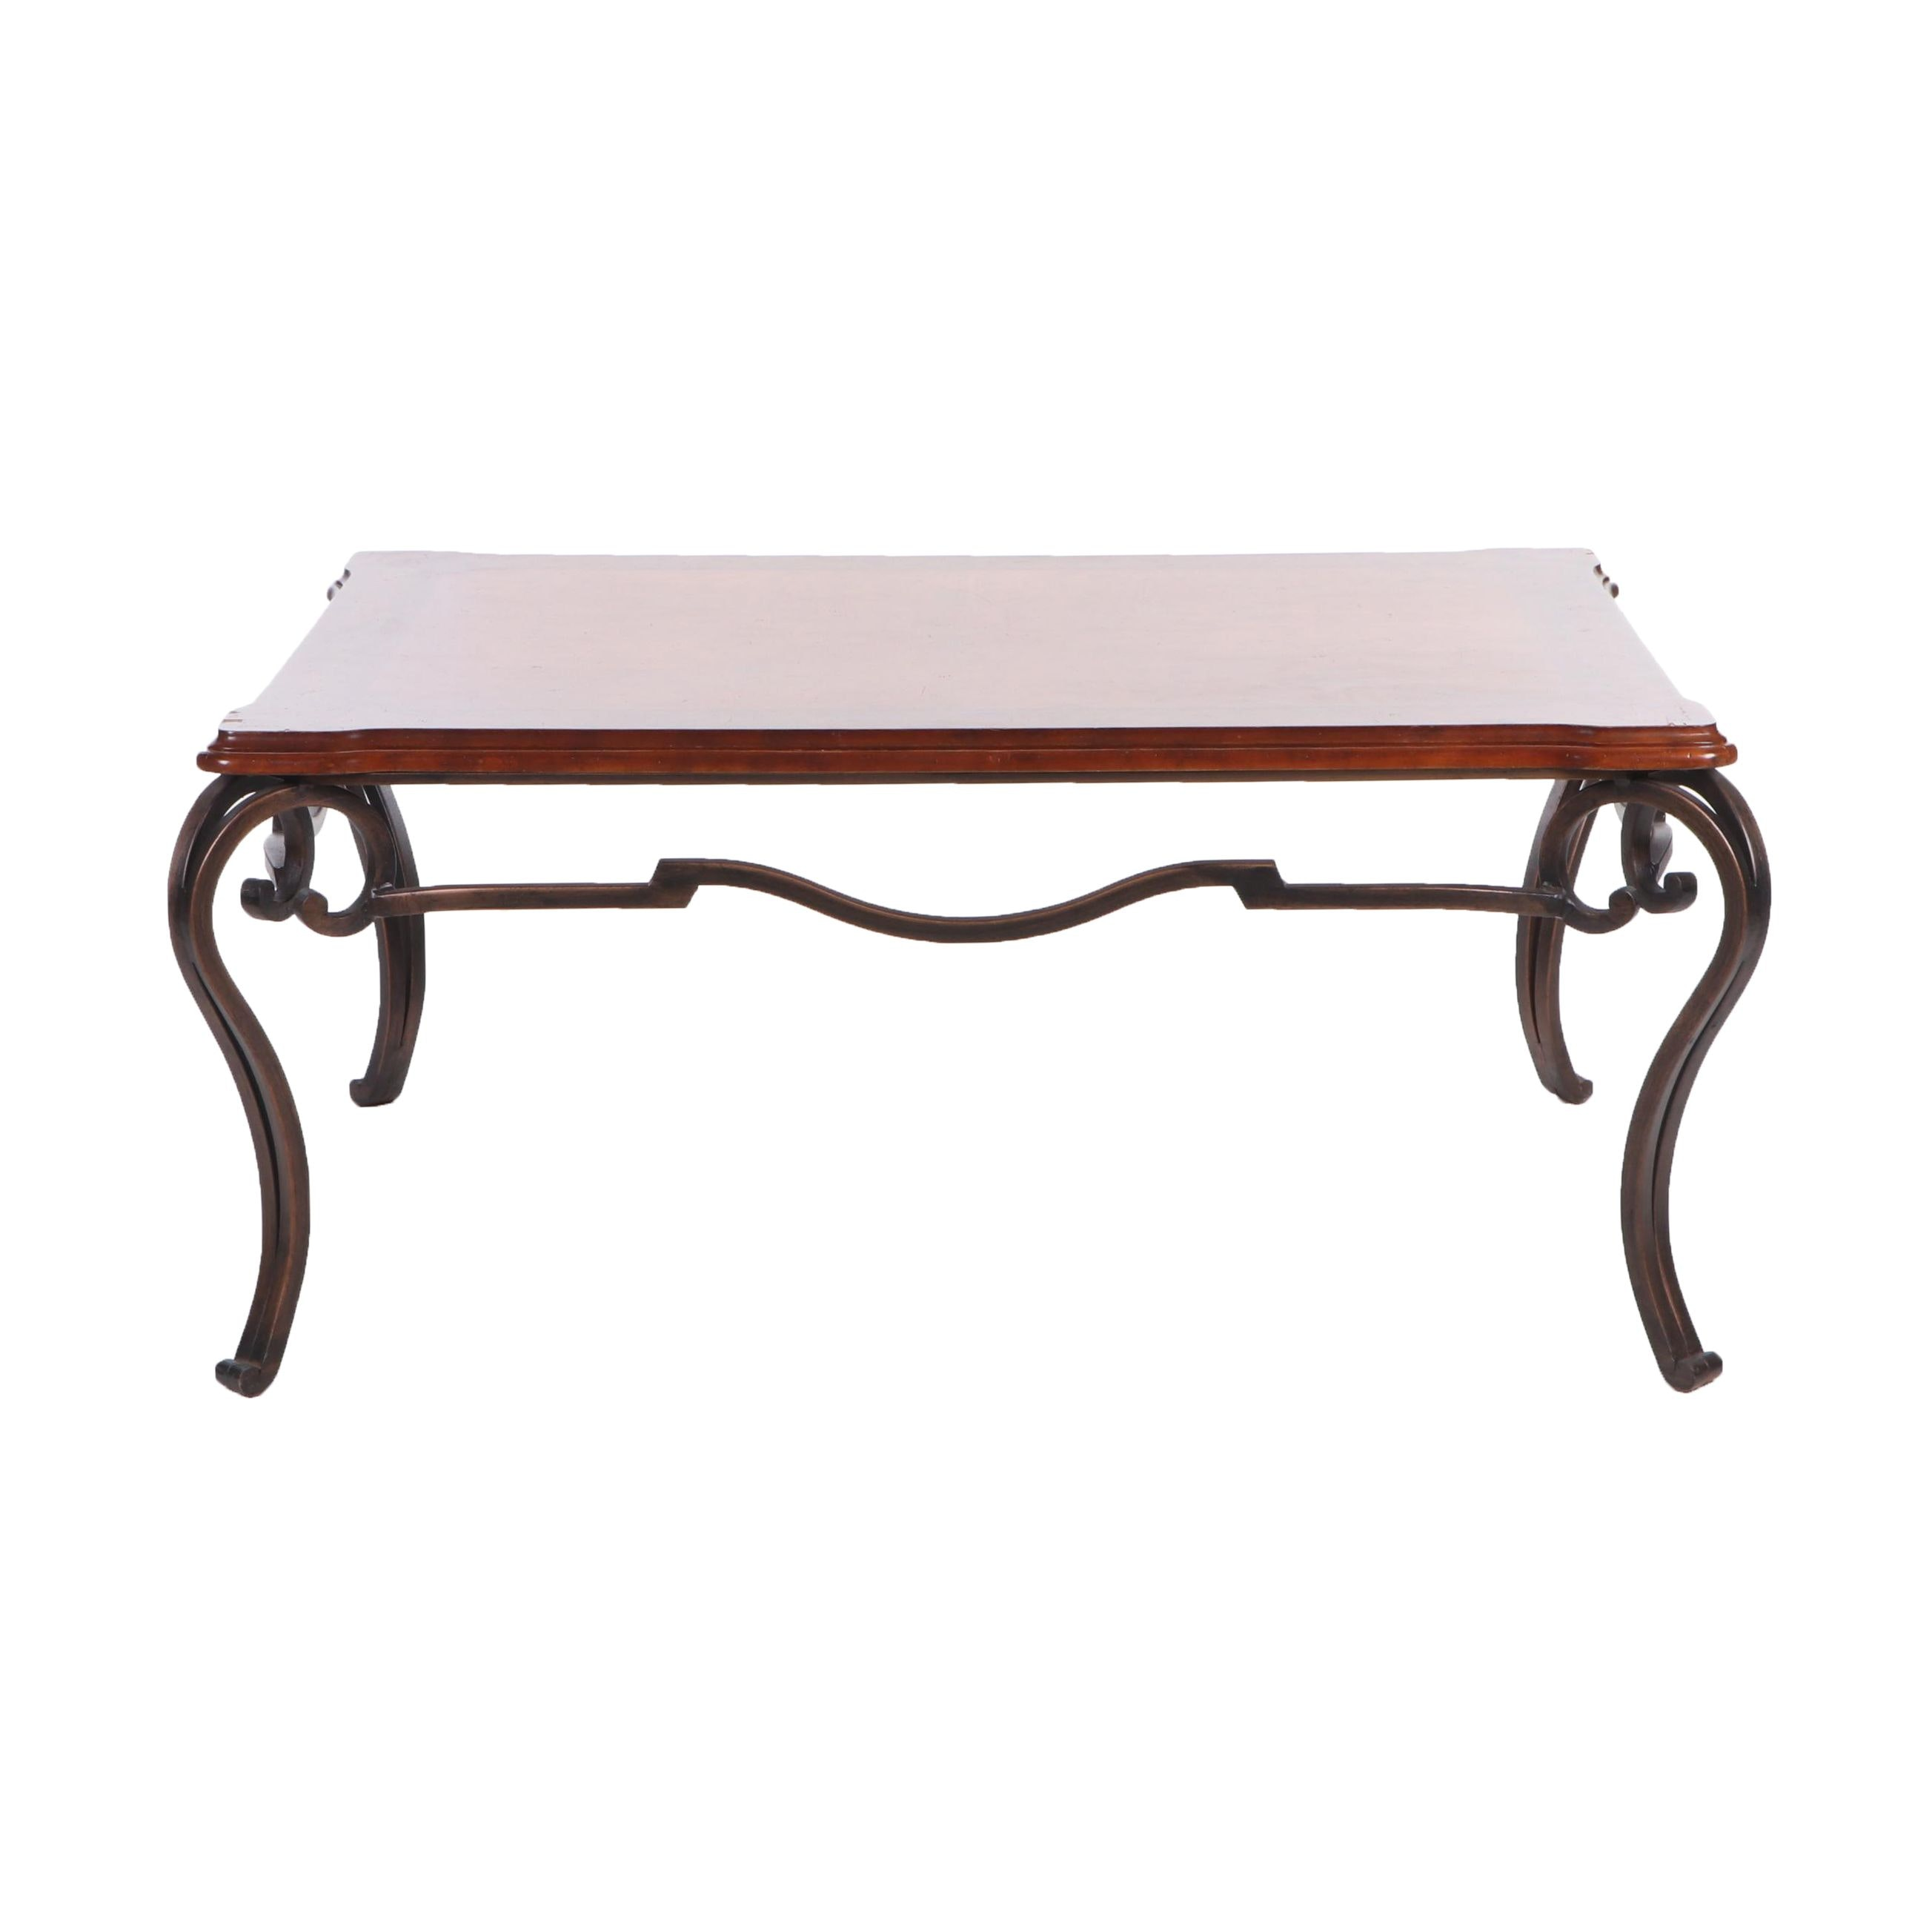 French Country Style Painted Wood and Iron Coffee Table, Contemporary